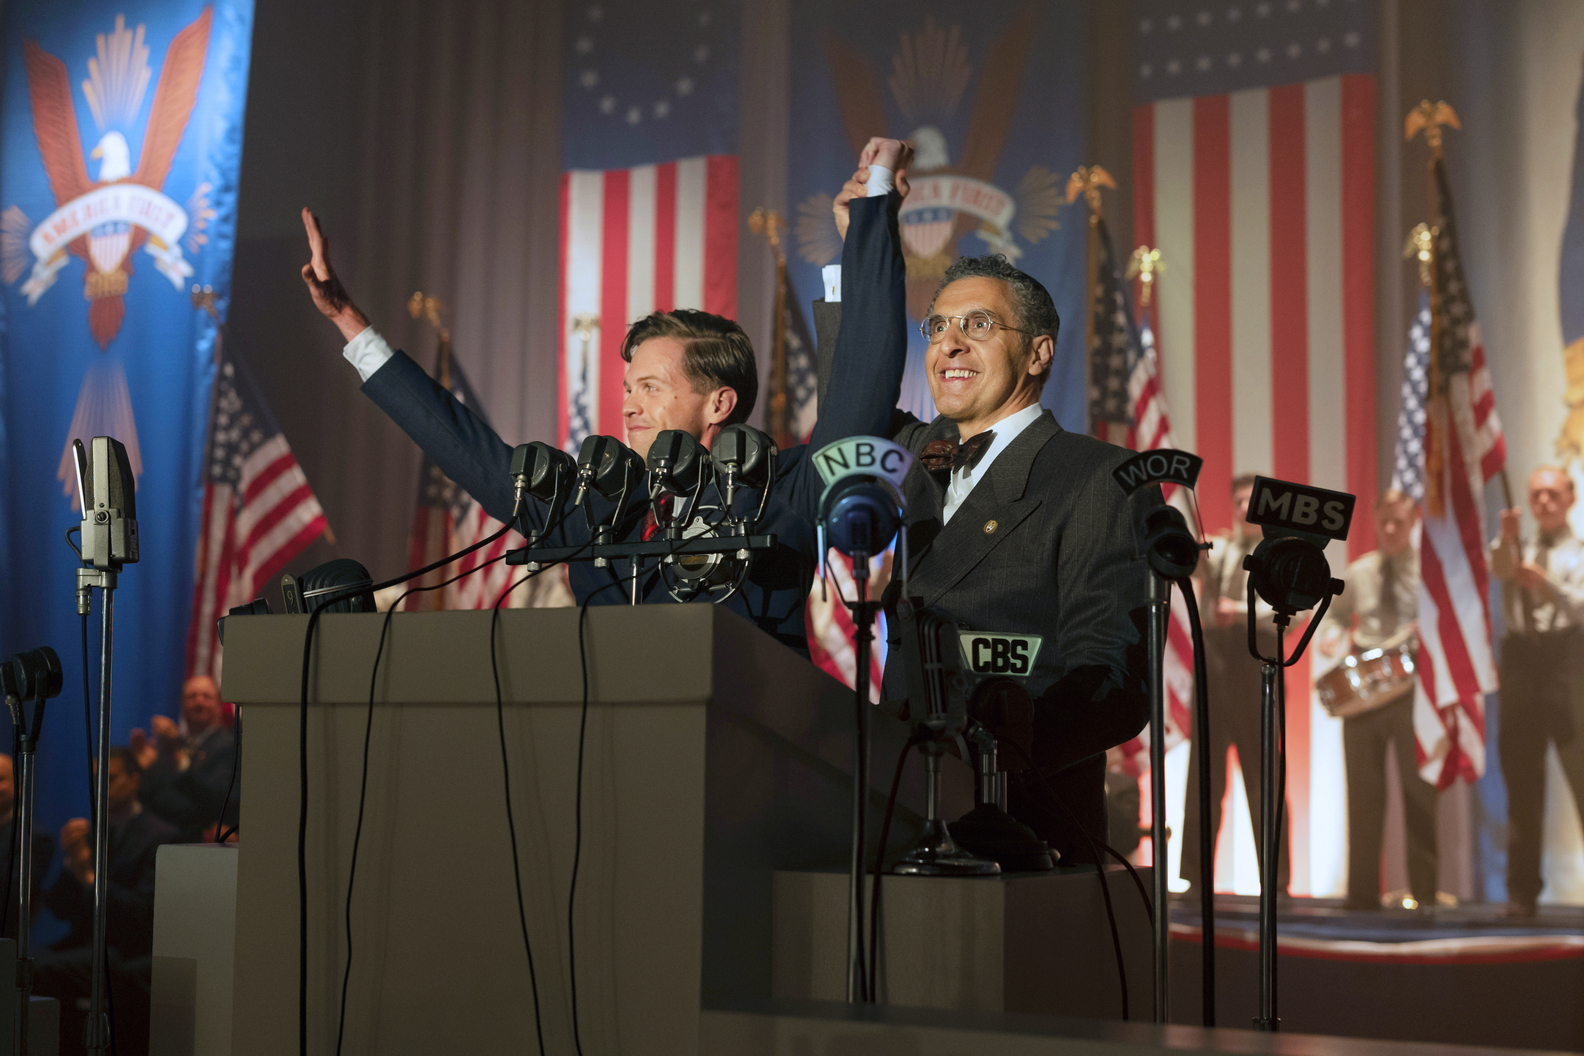 The Plot Against America Part 2 Review: Taking matters into your own hands